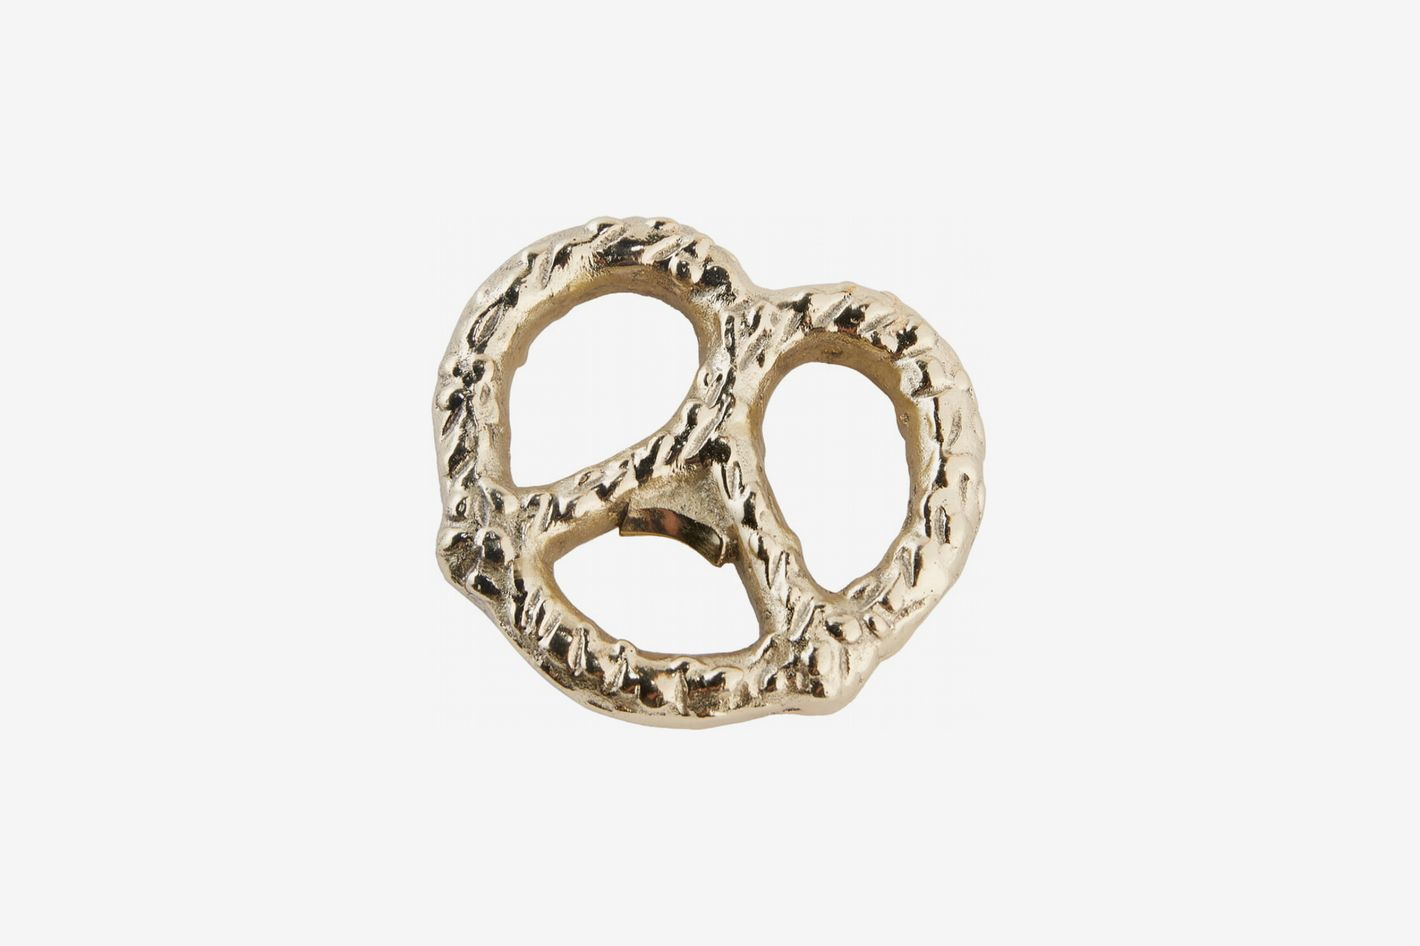 Anthropologie Pretzel Bottle Opener